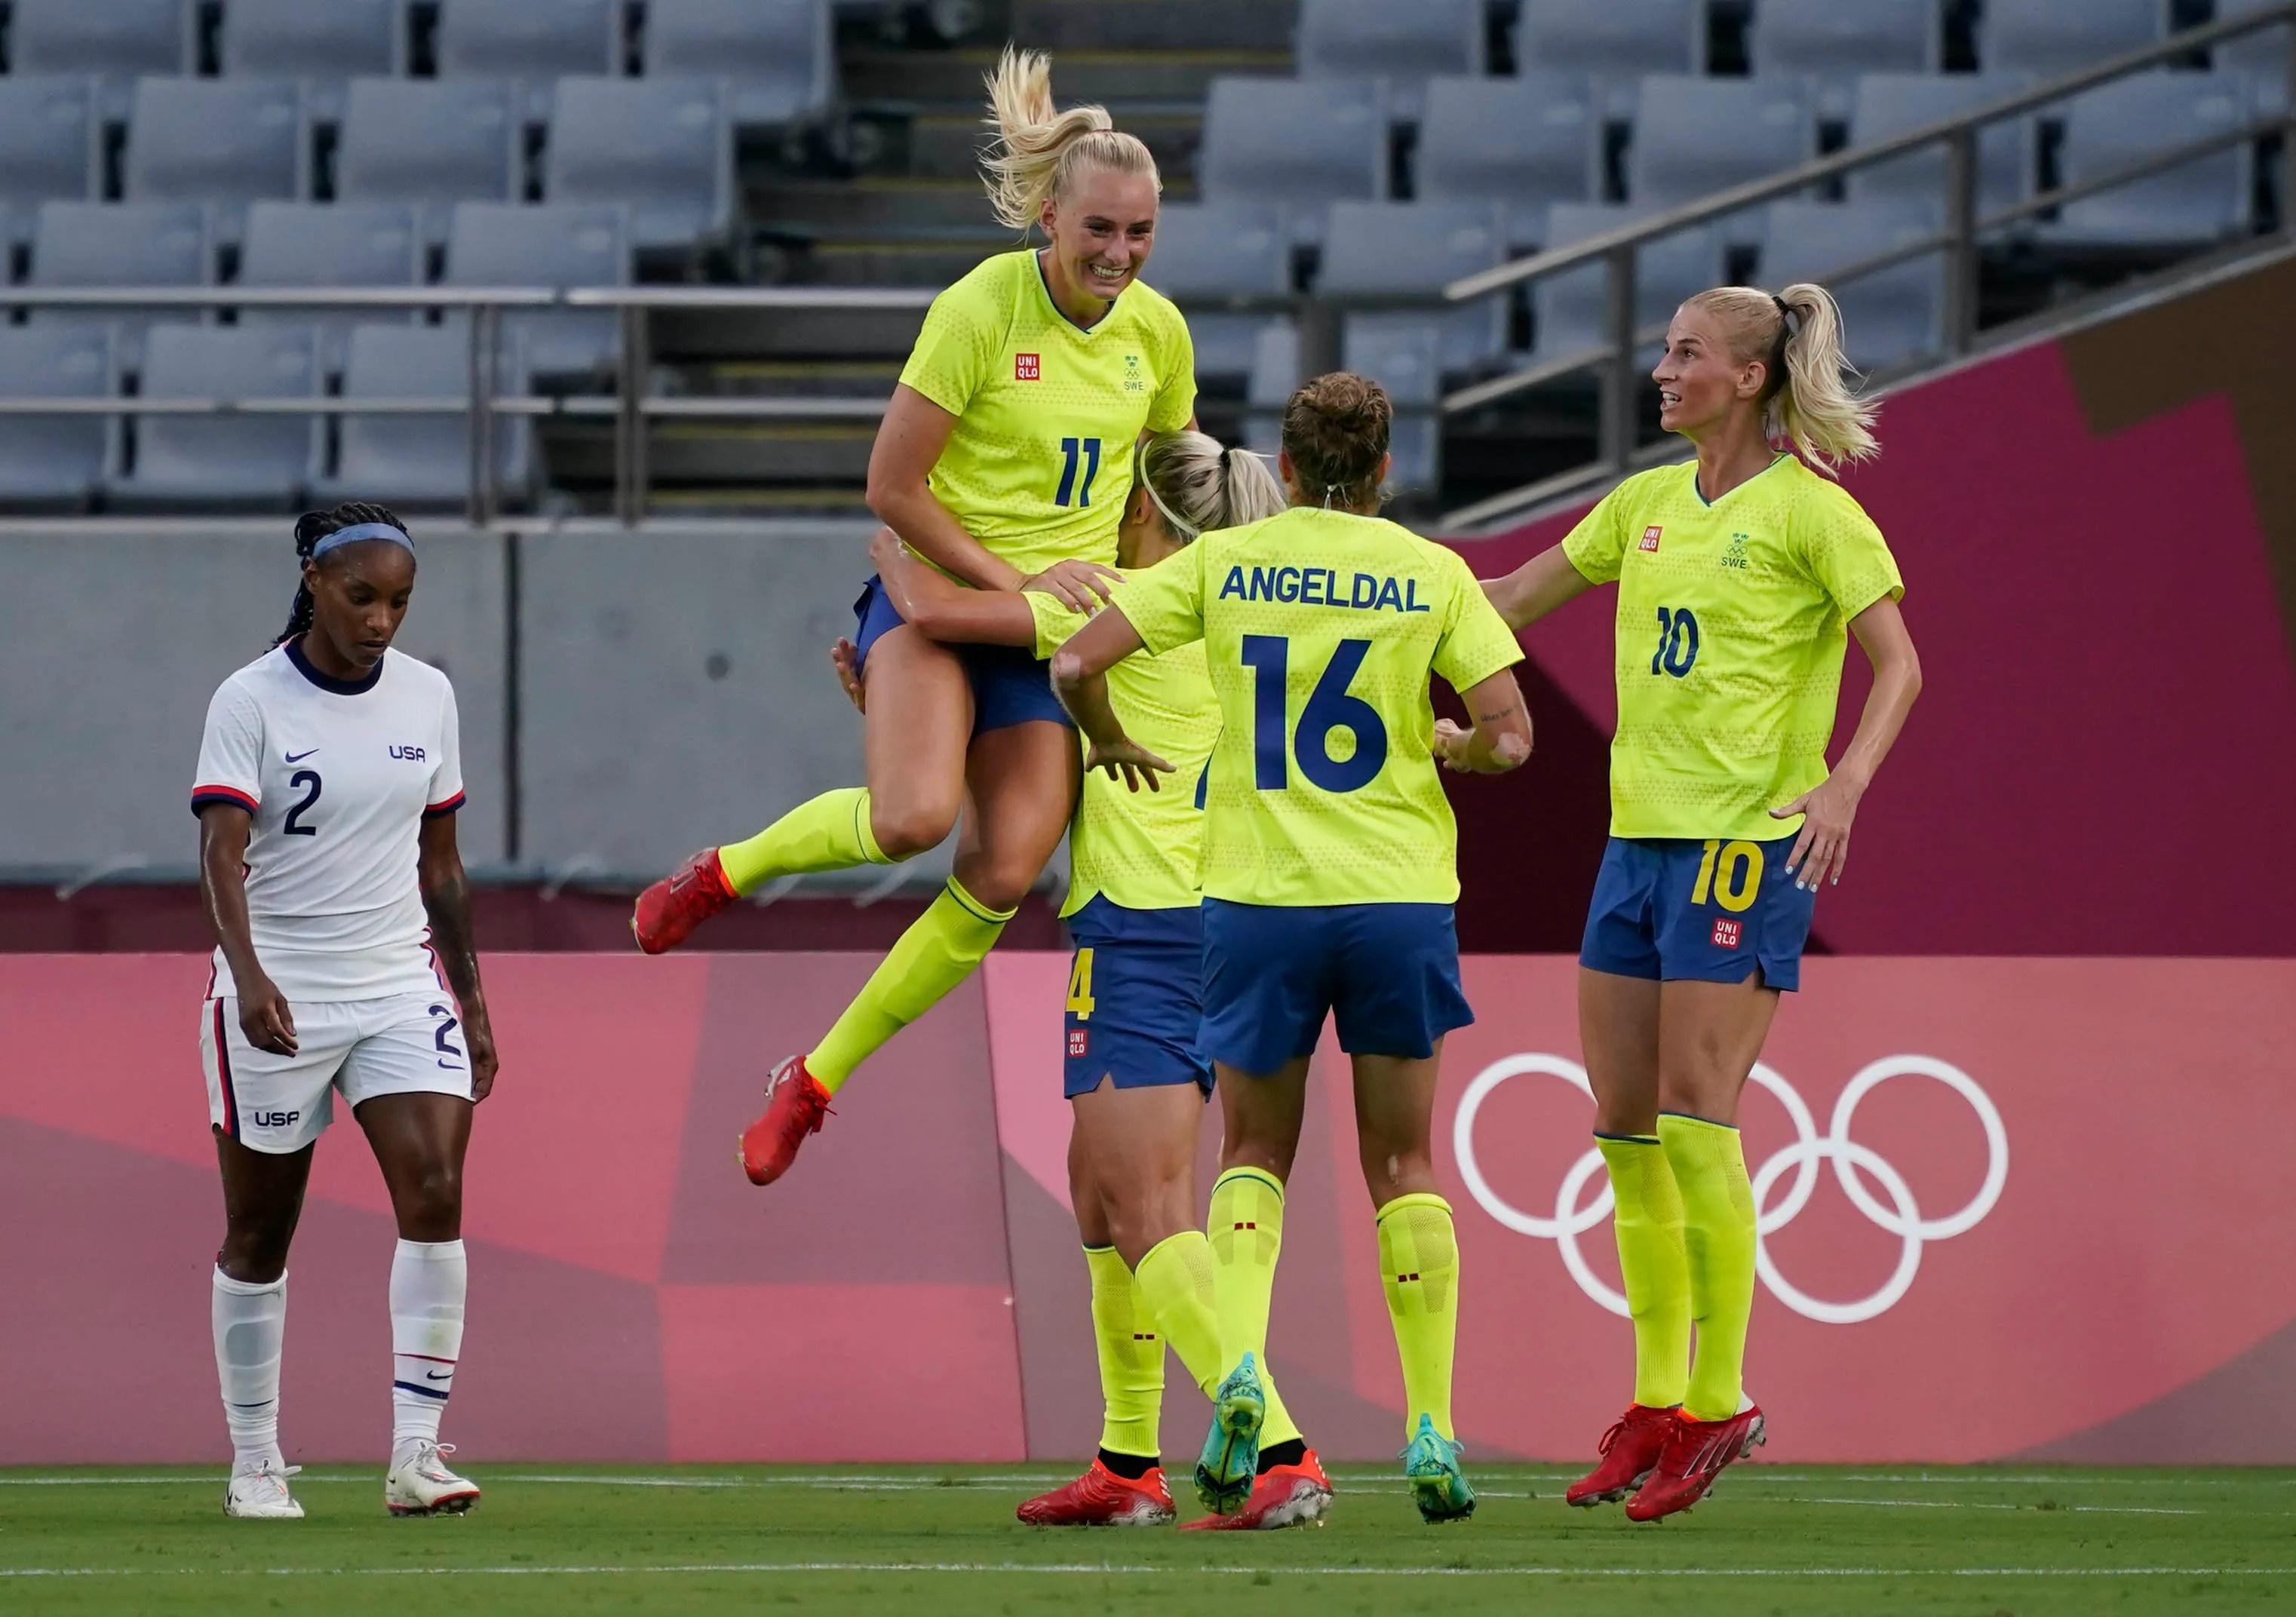 Sweden striker Stina Blackstenius (11) celebrates with her teammates after scoring a goal against the USA team during the first half of the Tokyo 2020 Olympic Summer Games at Tokyo Stadium.